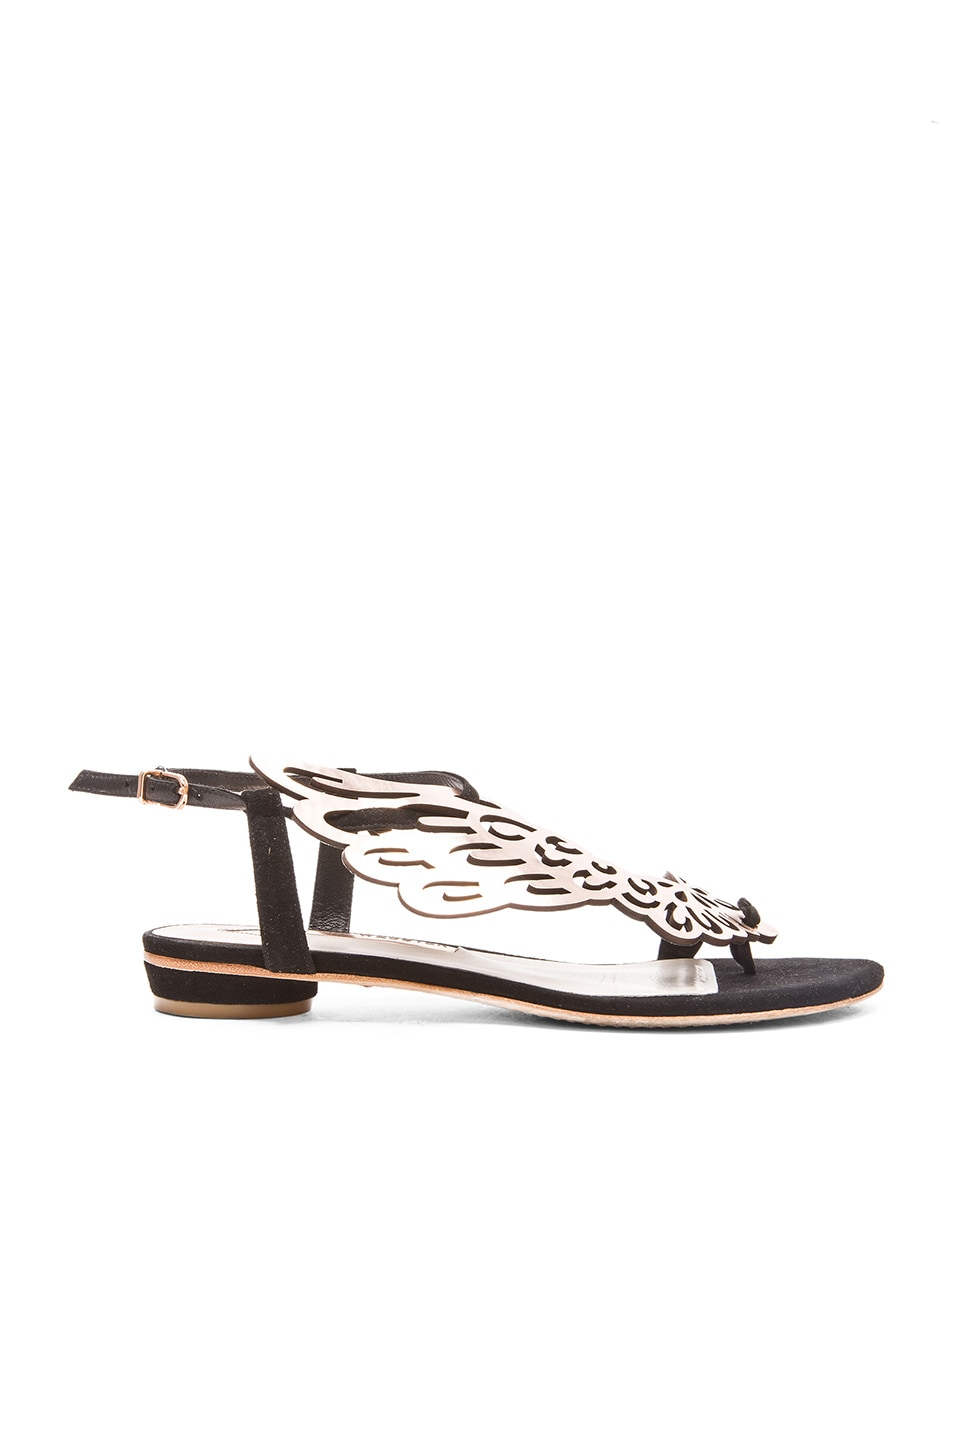 Image 1 of Sophia Webster Seraphina Leather Sandals in Black Rose Gold